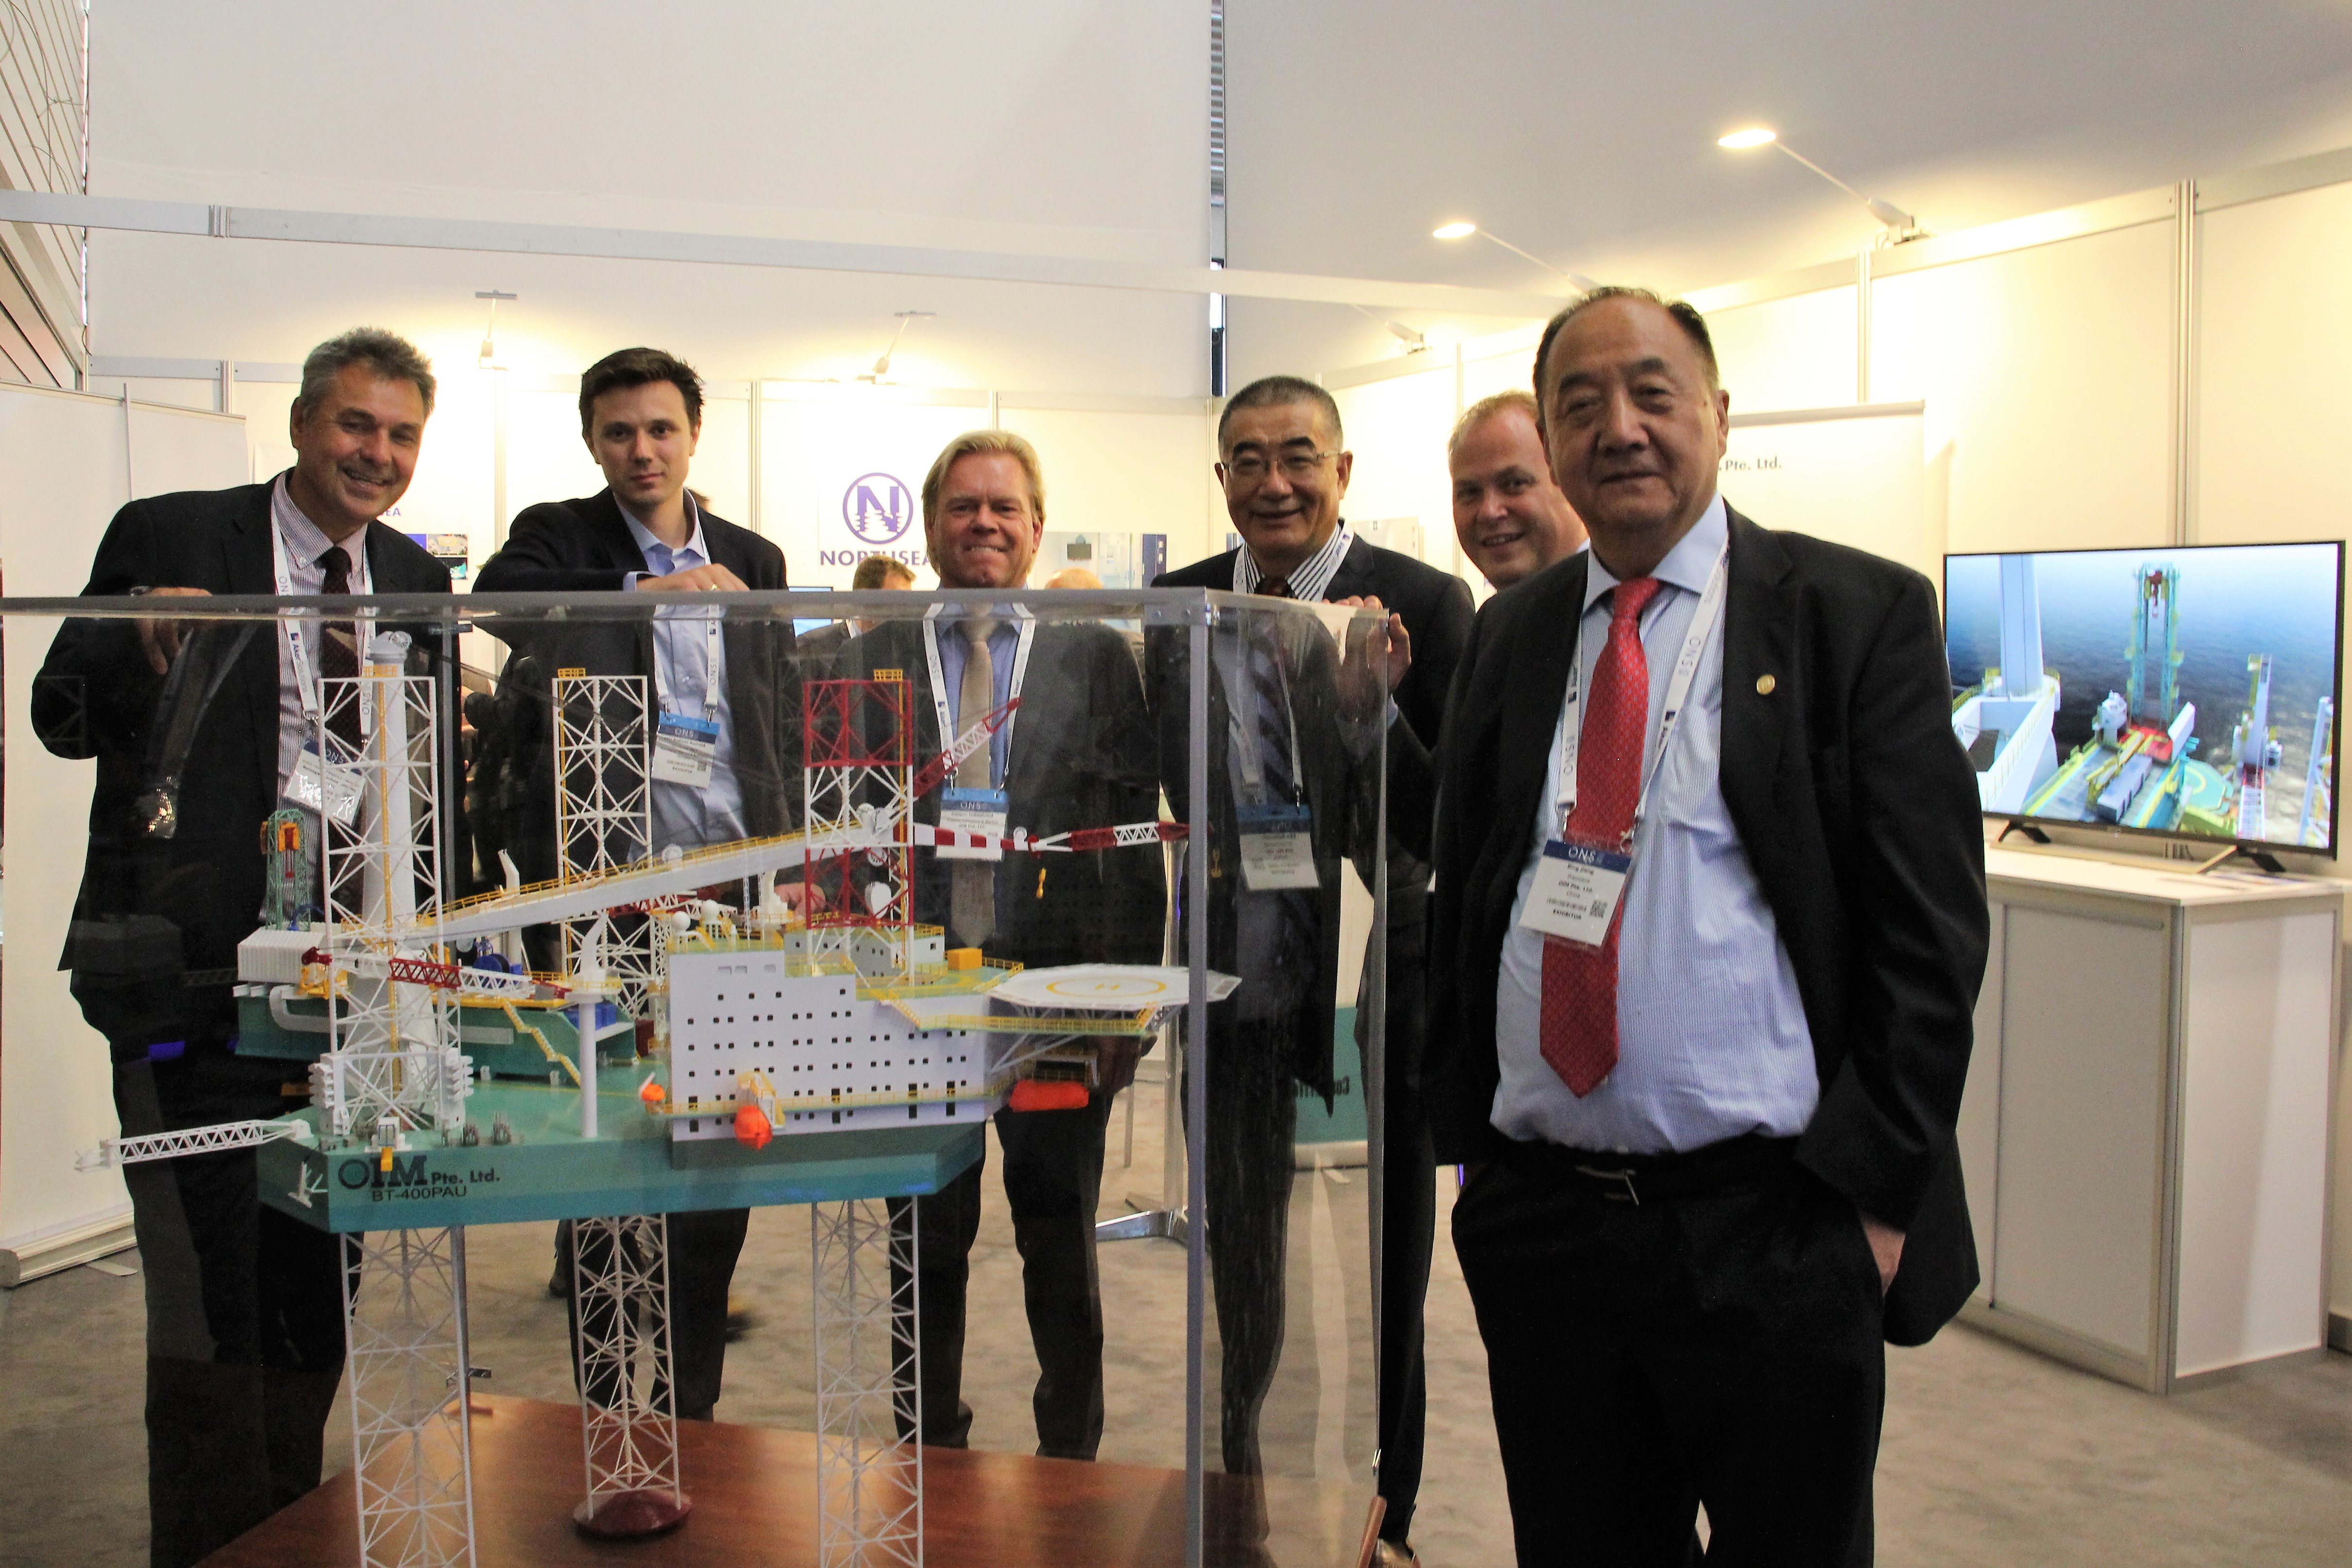 Six men in suits aurroundig a model of aan offshore rig.